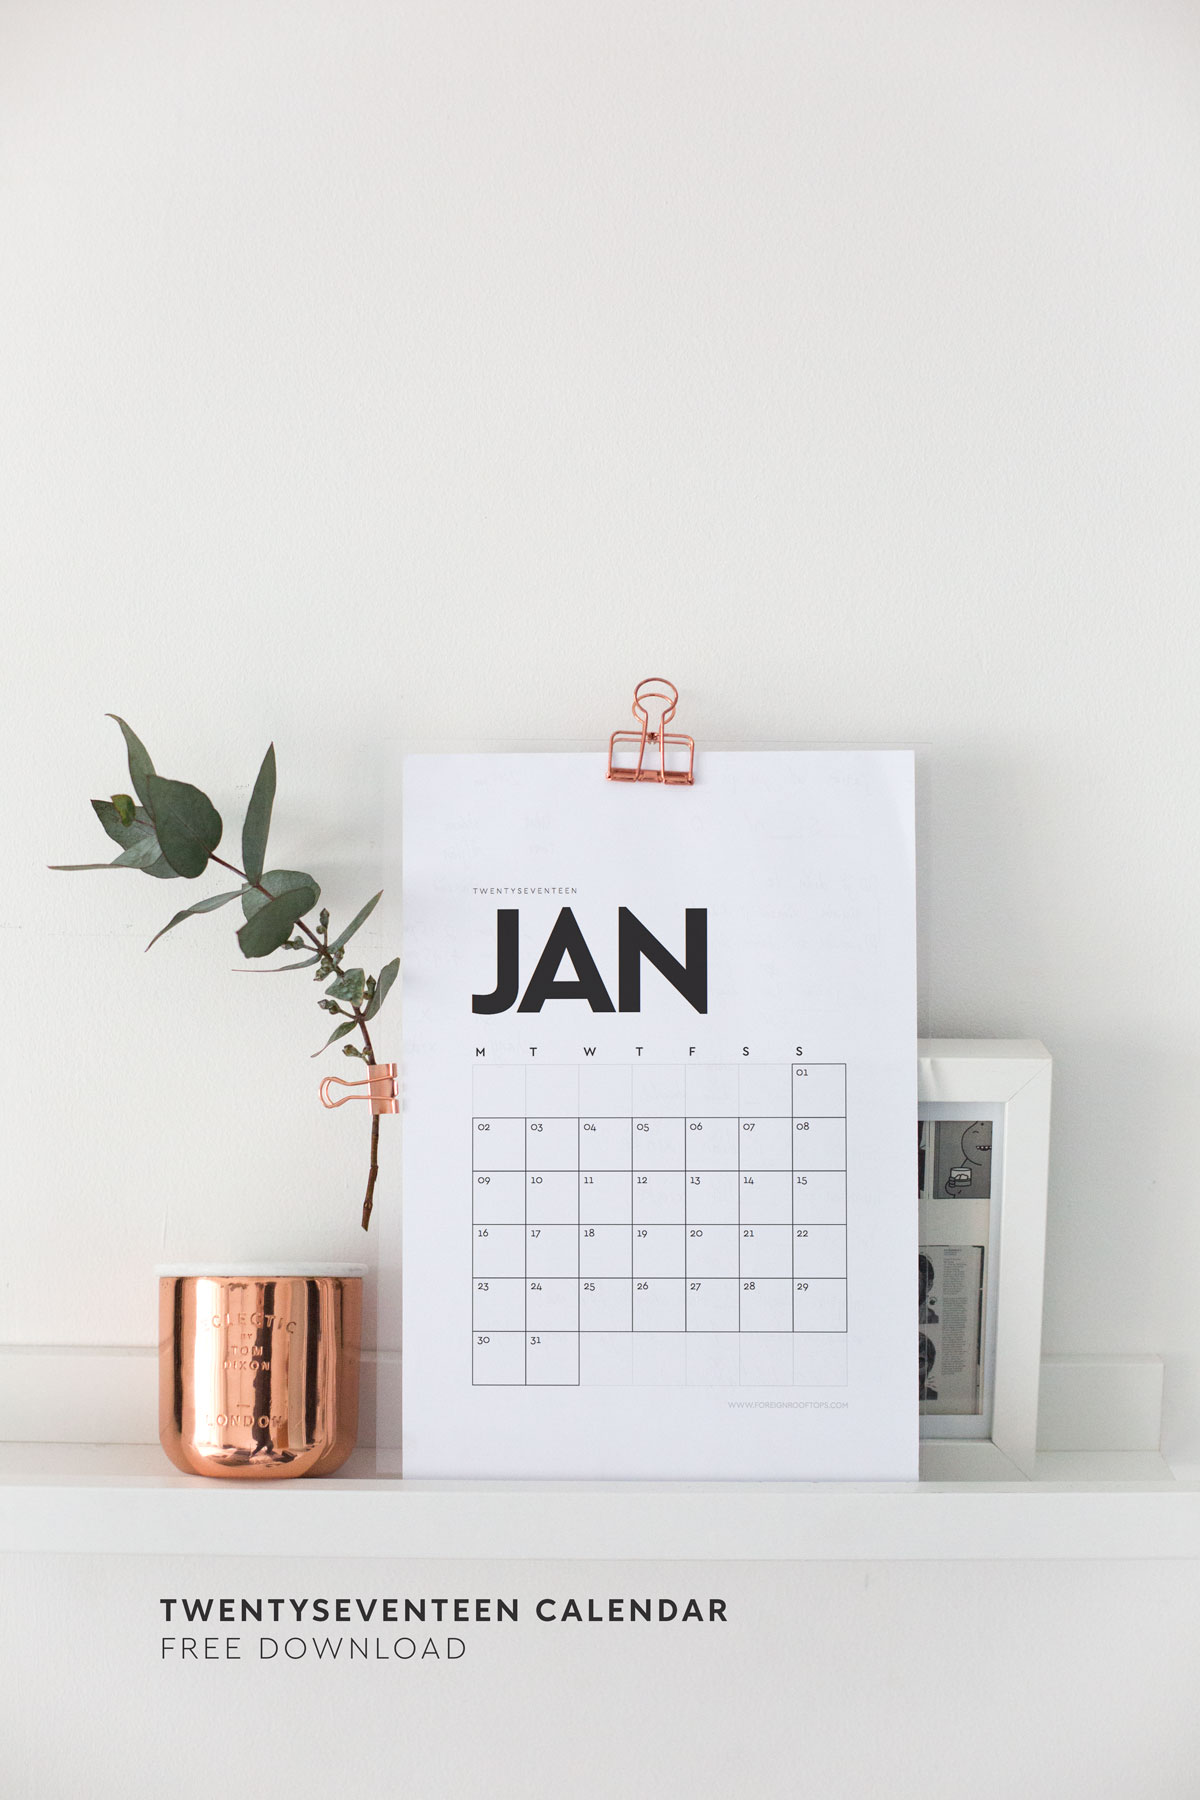 2017 Calendar Minimalist : Printable wall calendar free download